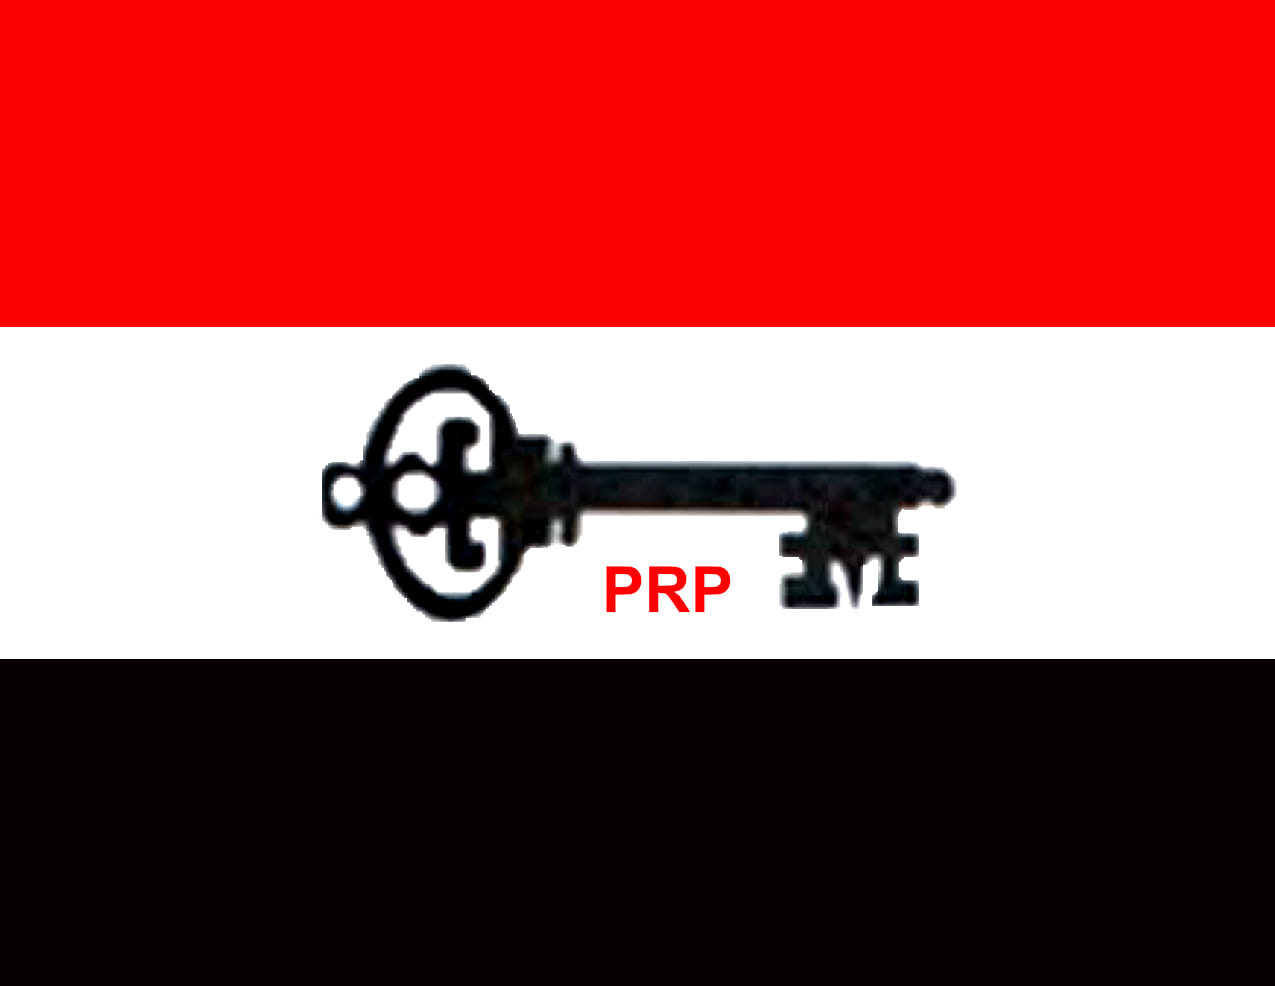 Nigeria's People's Redemption Party, (PRP), Declares Itself Government-in-Waiting